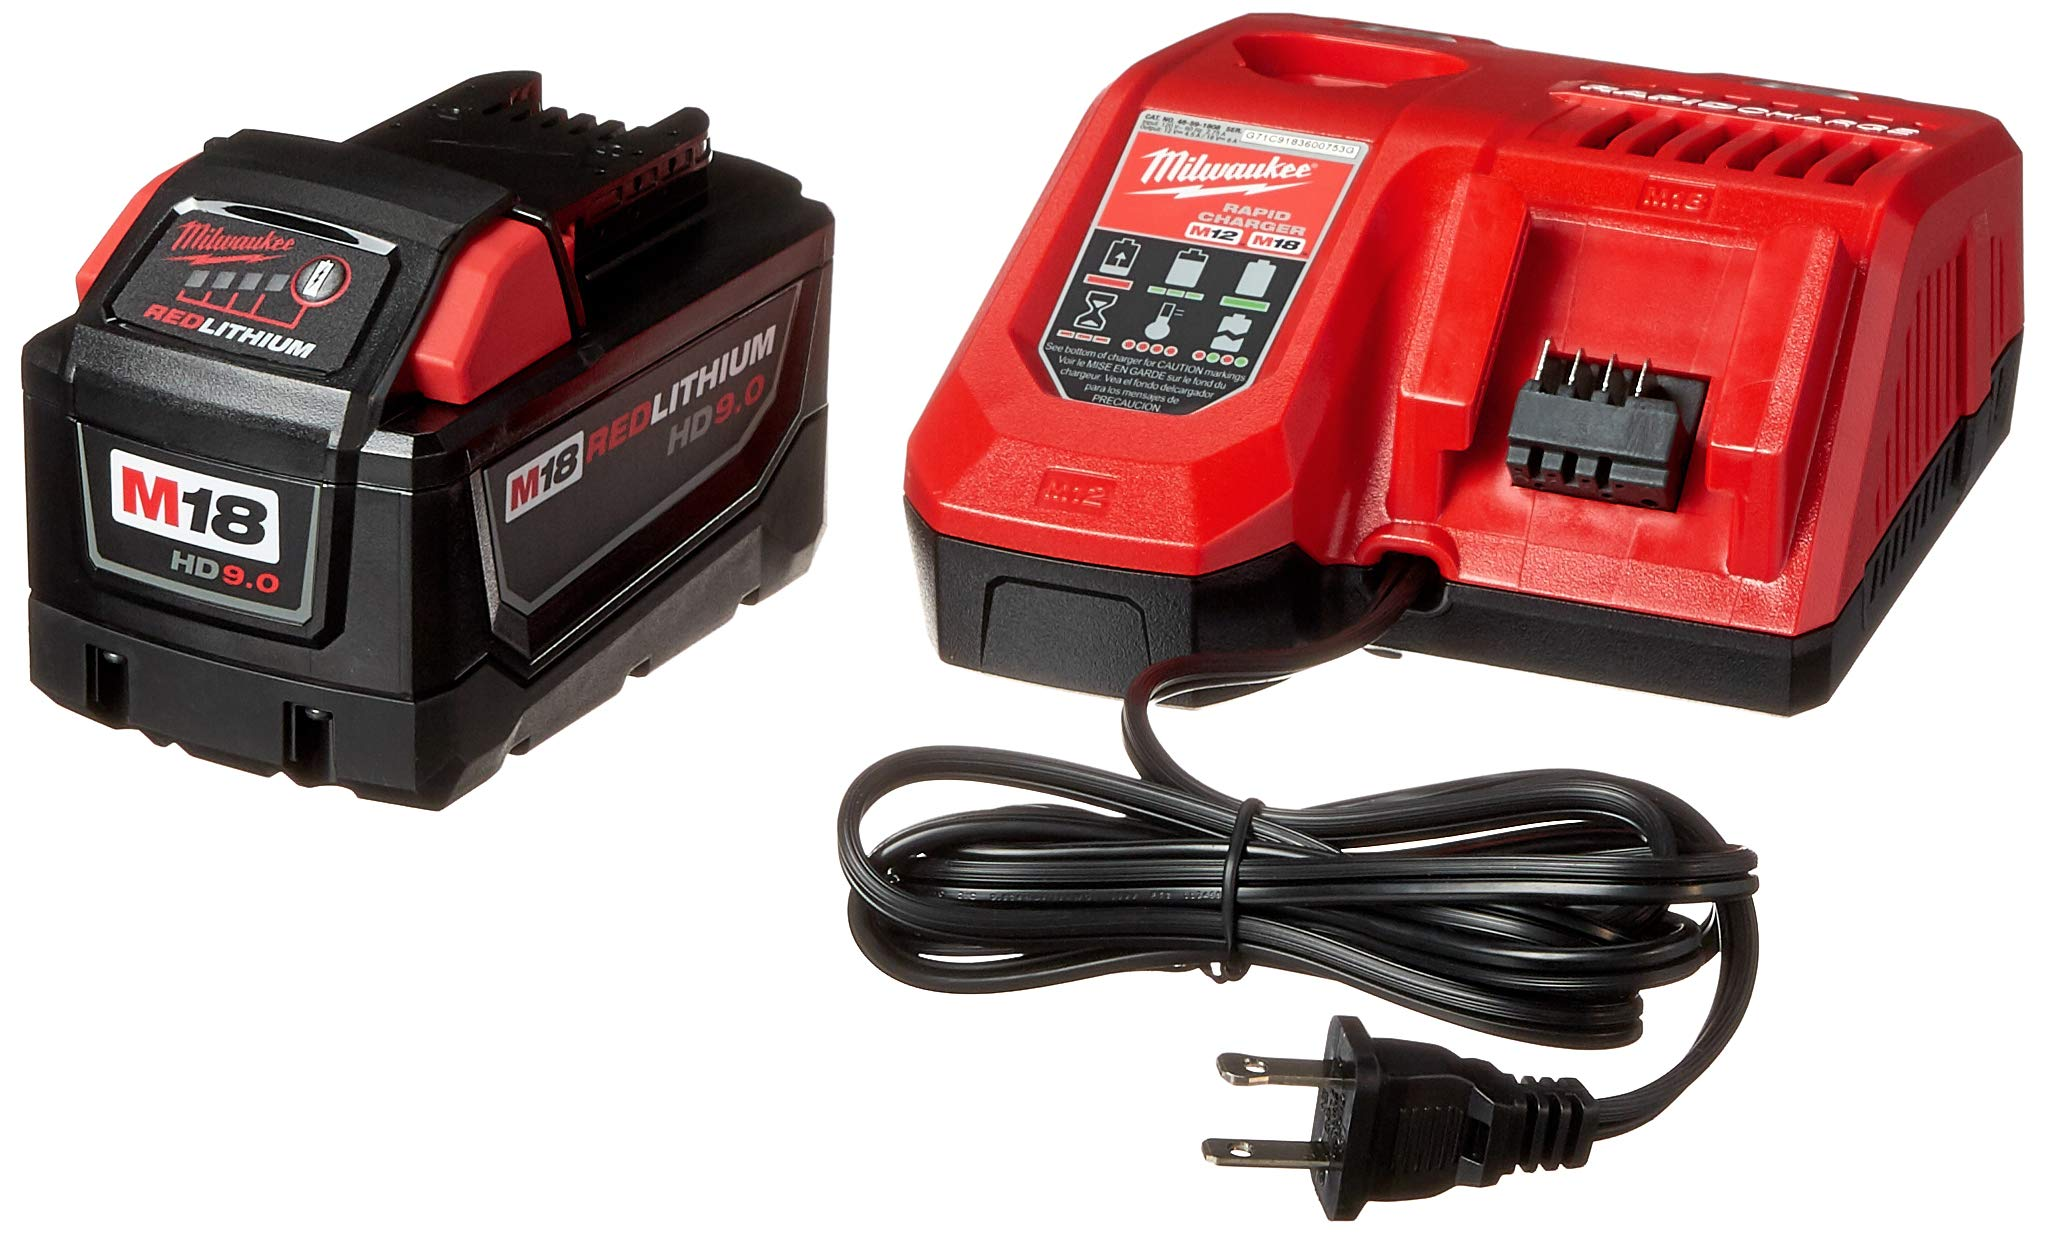 MILWAUKEE ELEC TOOL 48-59-1890 M18 9.0Ah Starter Kit by Milwaukee